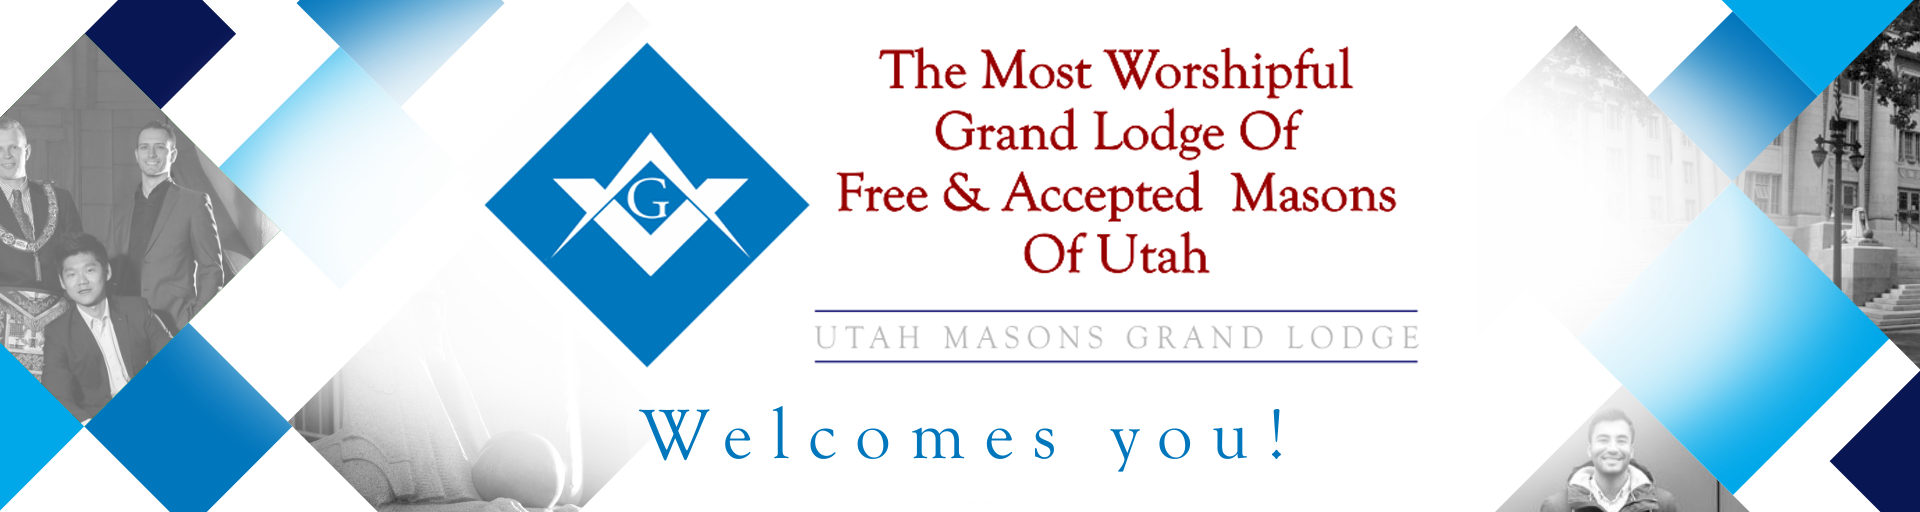 The Most Worshipful Grand Lodge of Free & Accepted Masons of